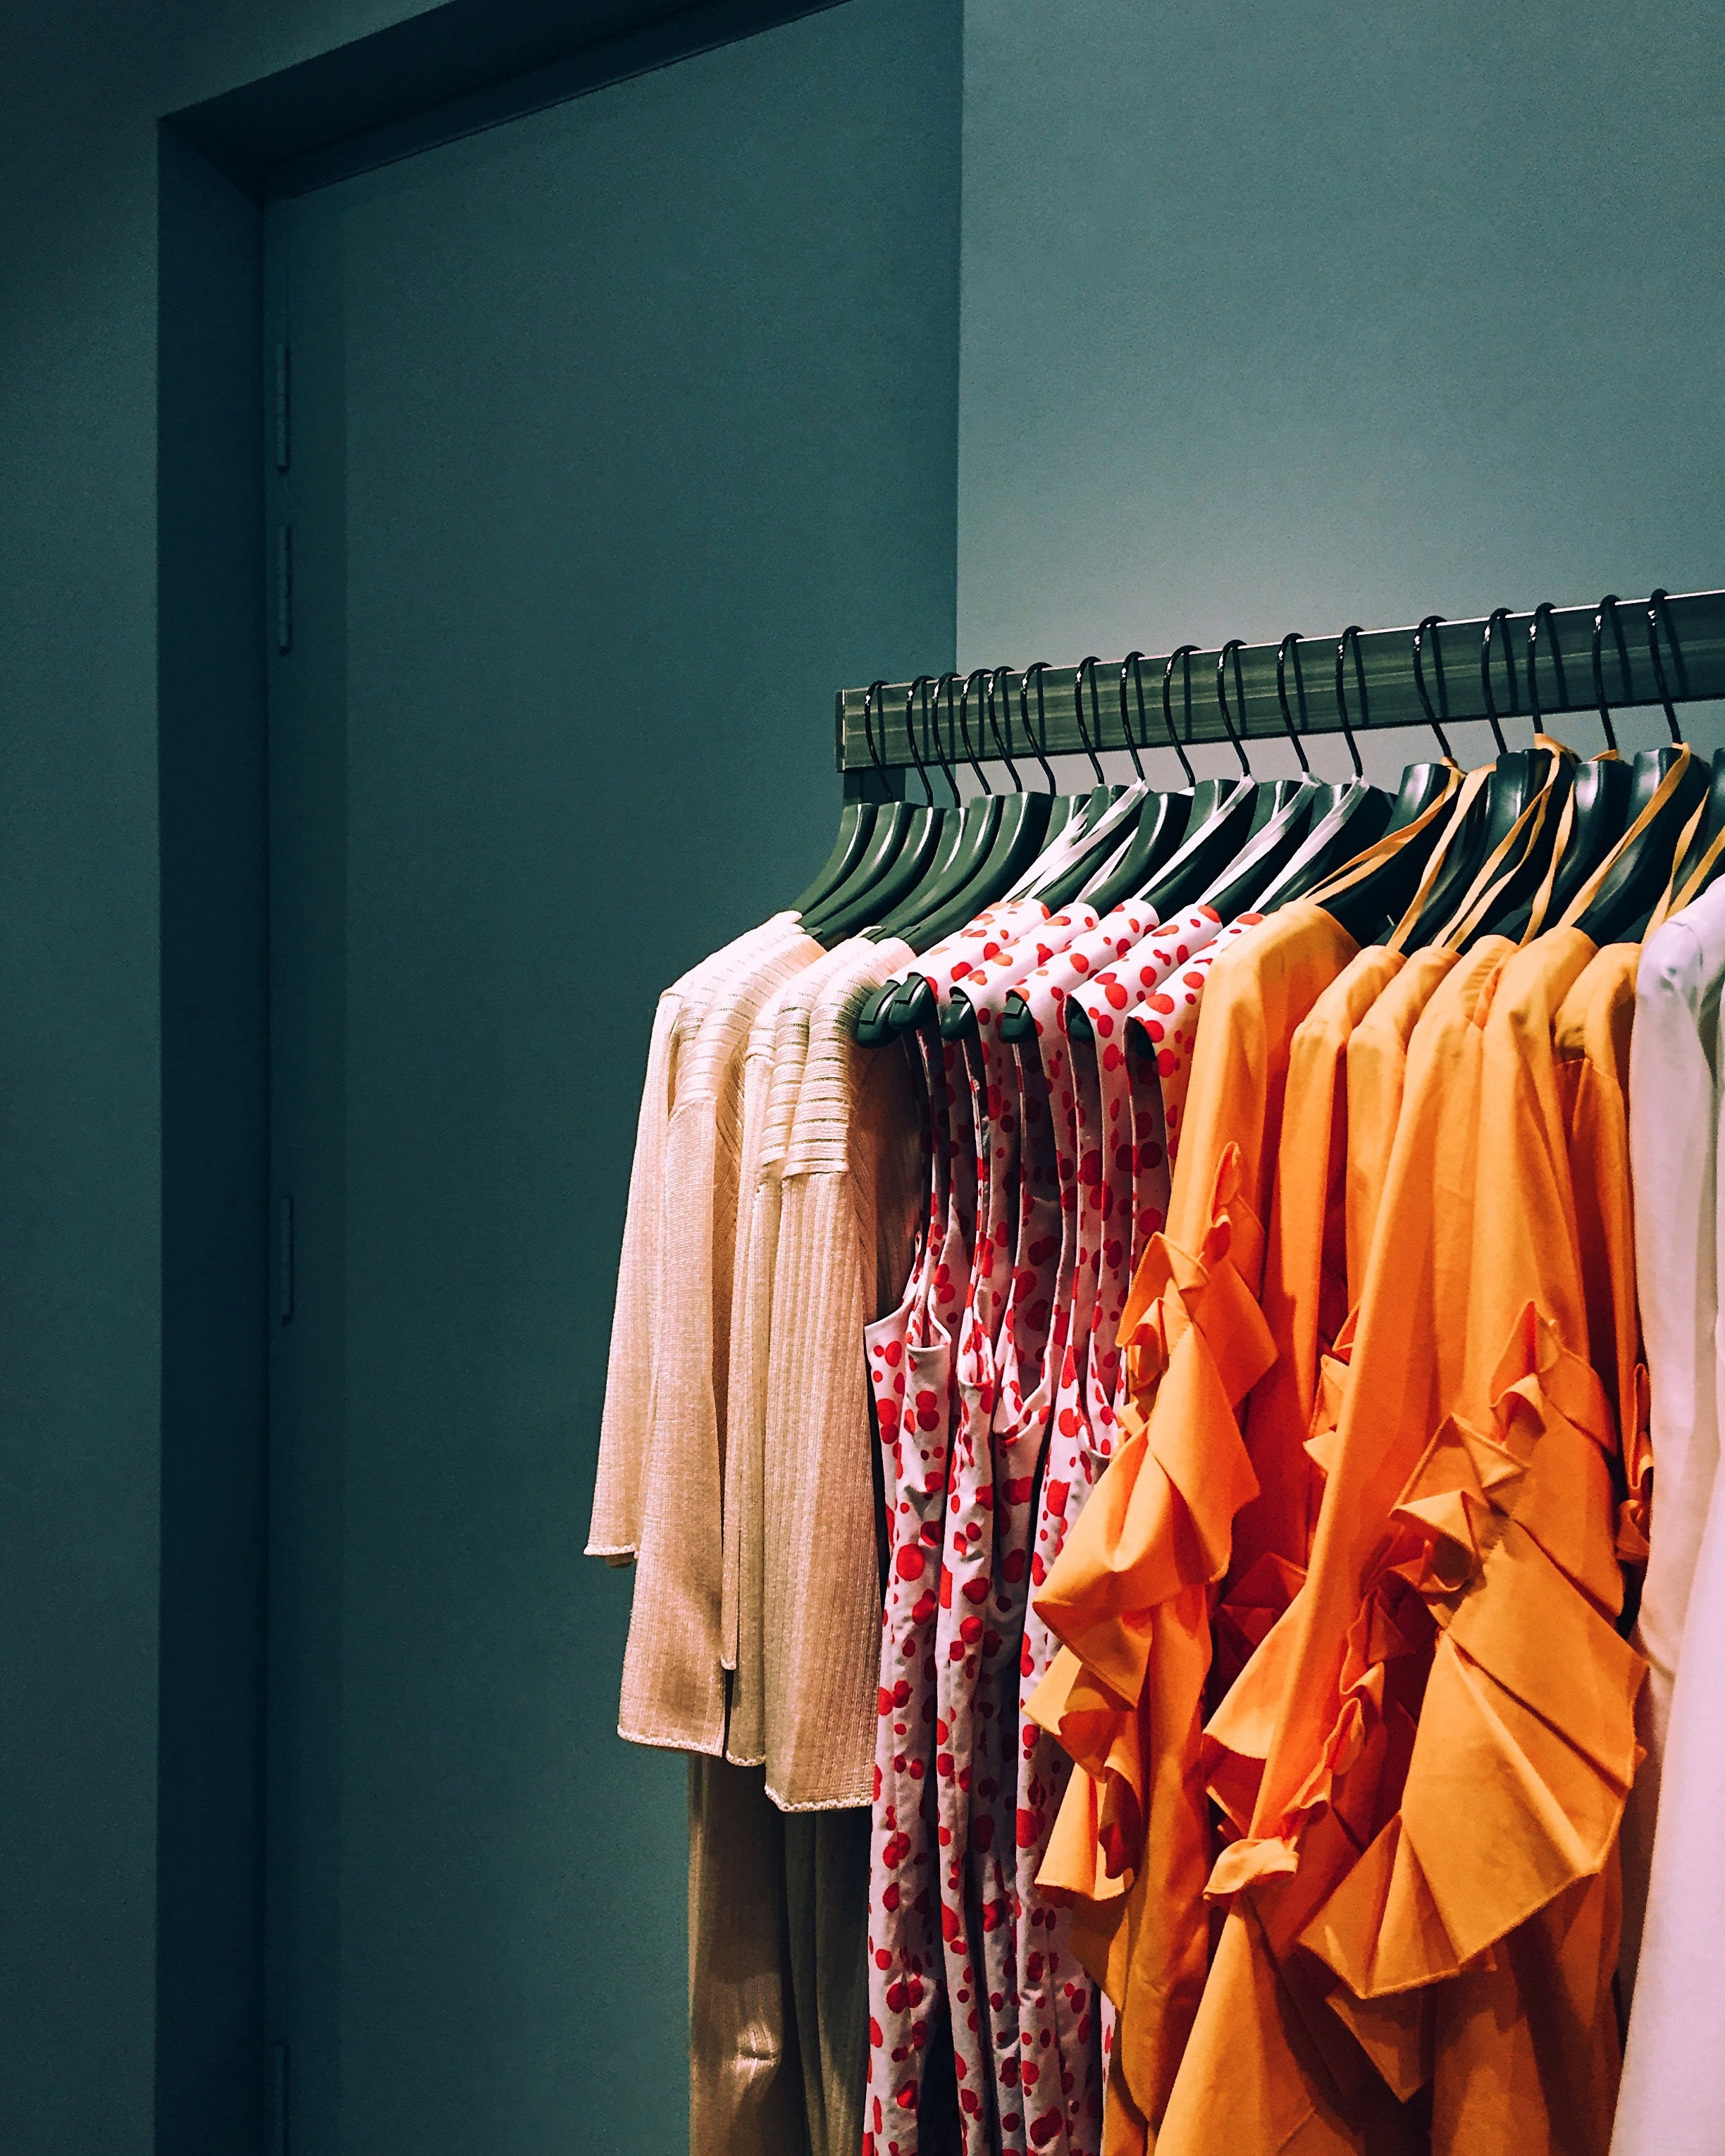 Use blog posts as an effective way to share fashion expertise.